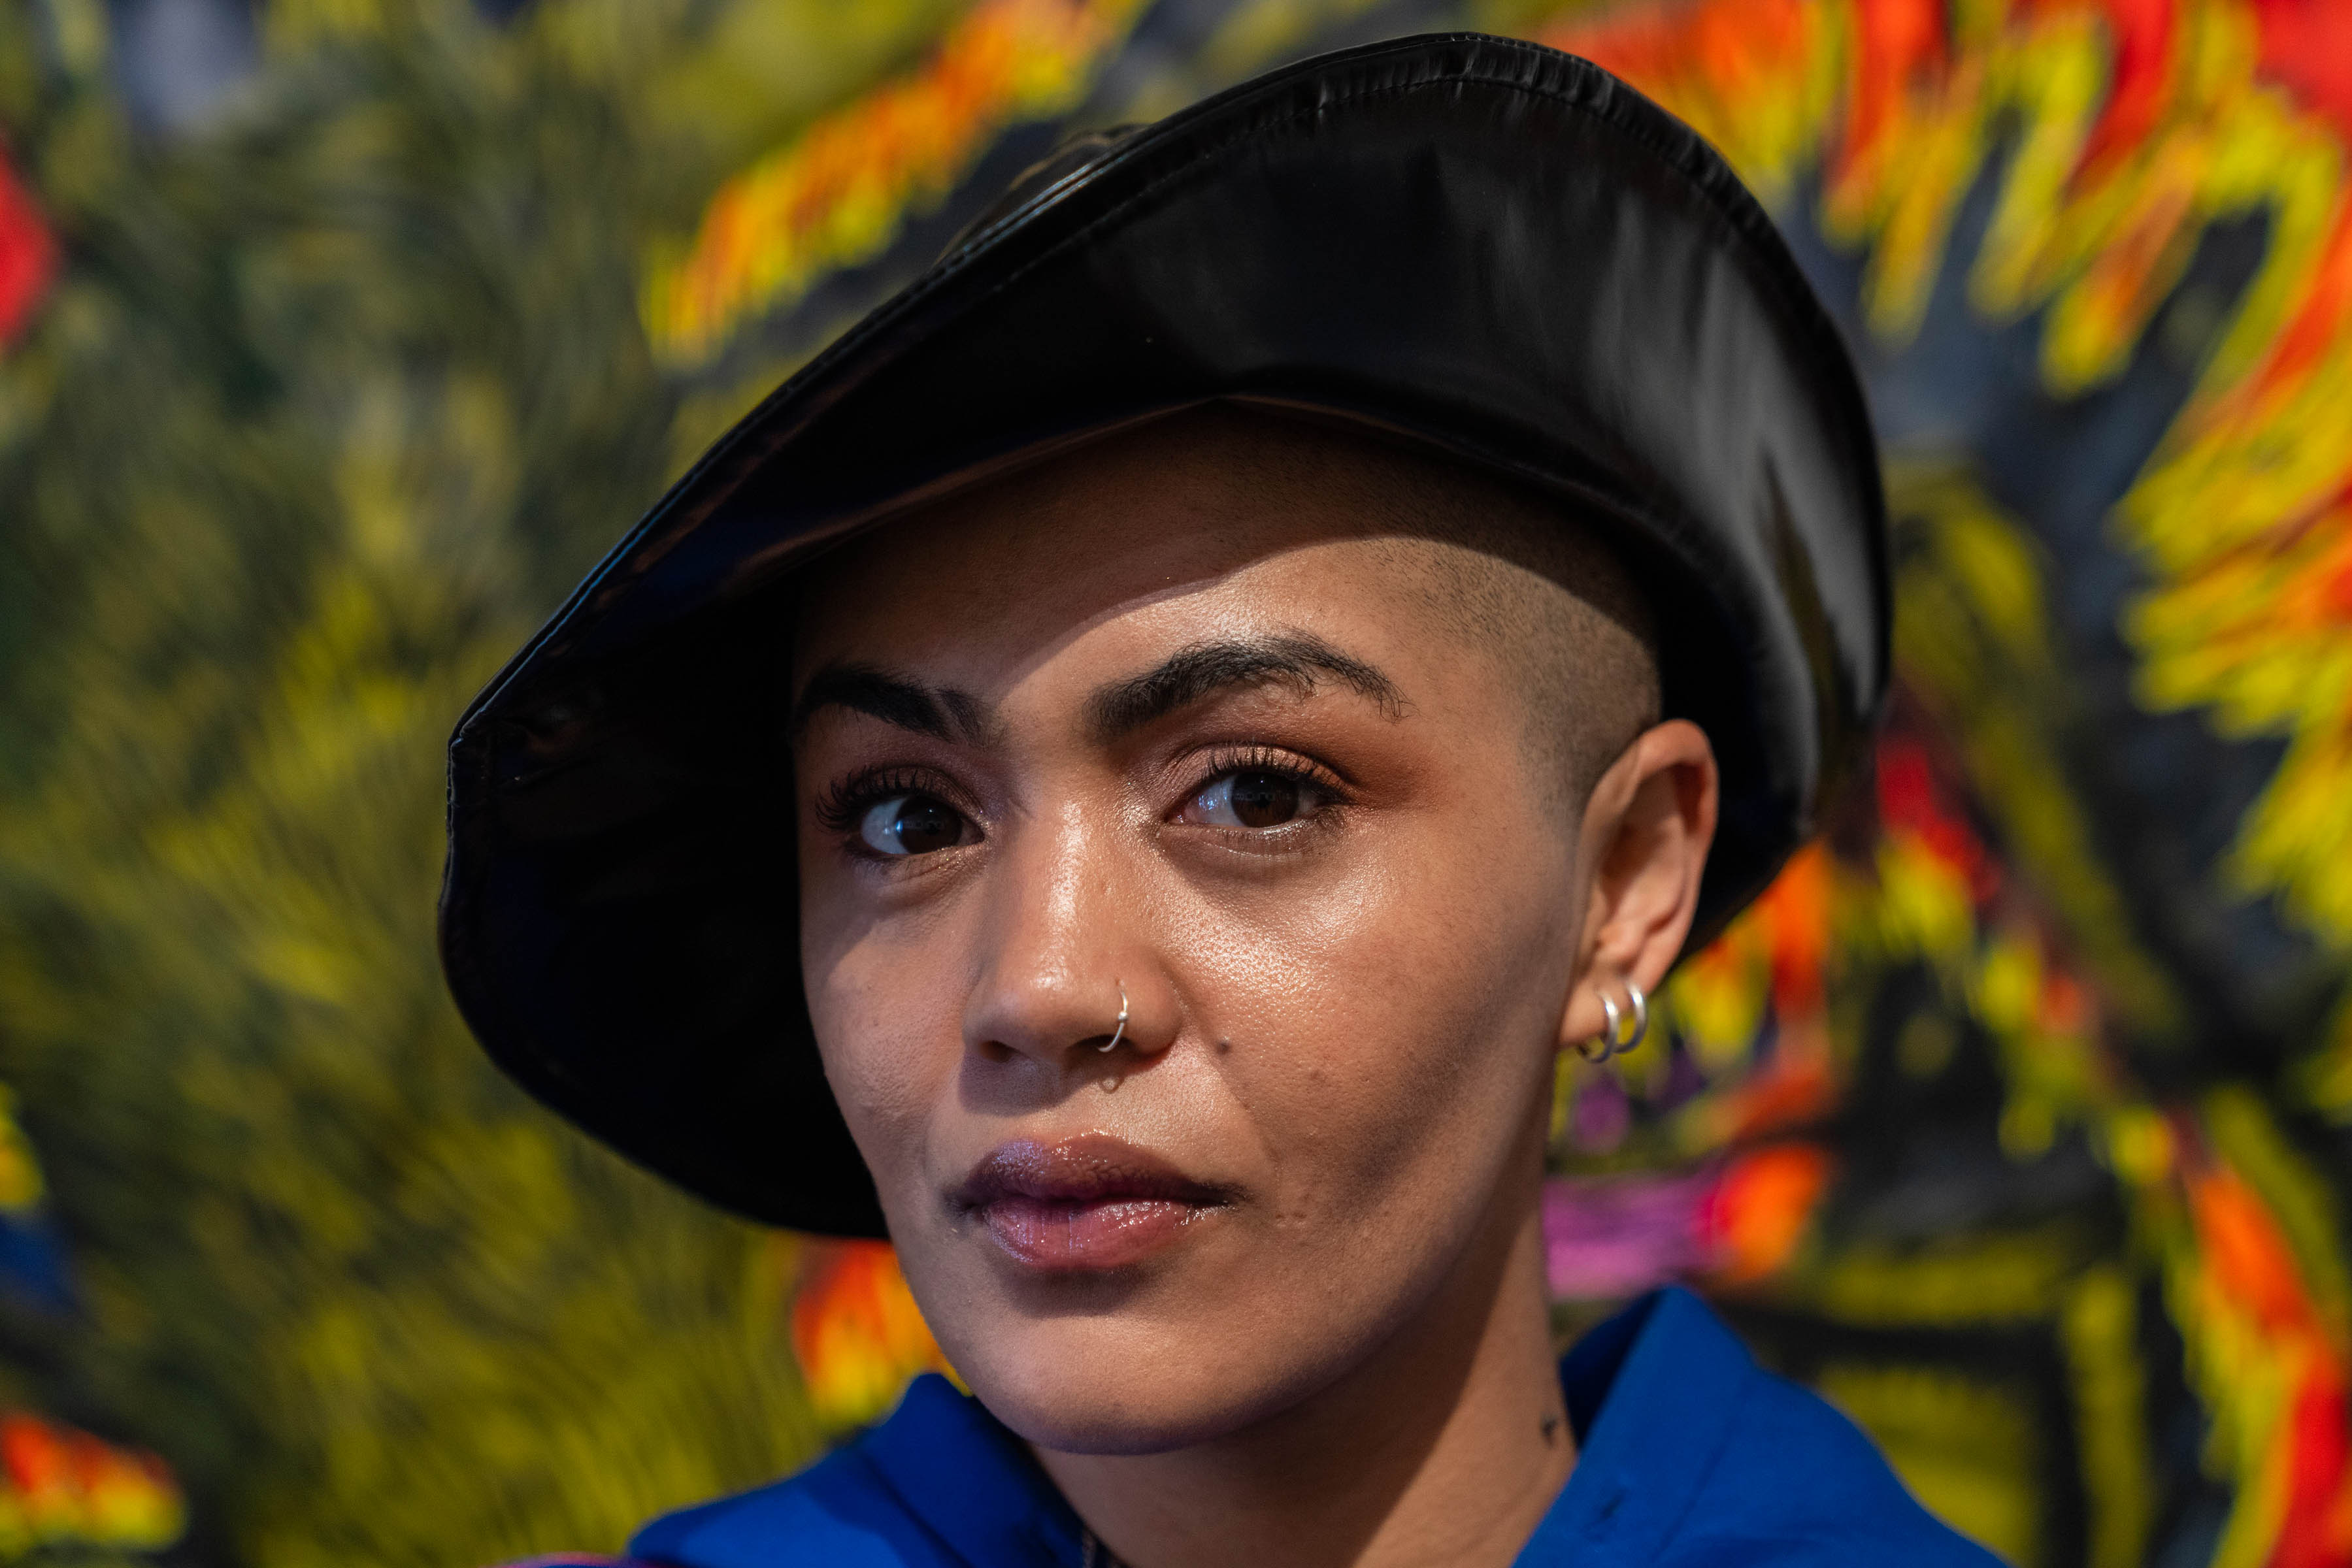 27 June 2019: Lady Skollie works to create vital spaces where art can be accessible beyond narrowly defined limits, especially for black audiences and artists, who were historically prohibited from some galleries. (Photograph by Ihsaan Haffejee)